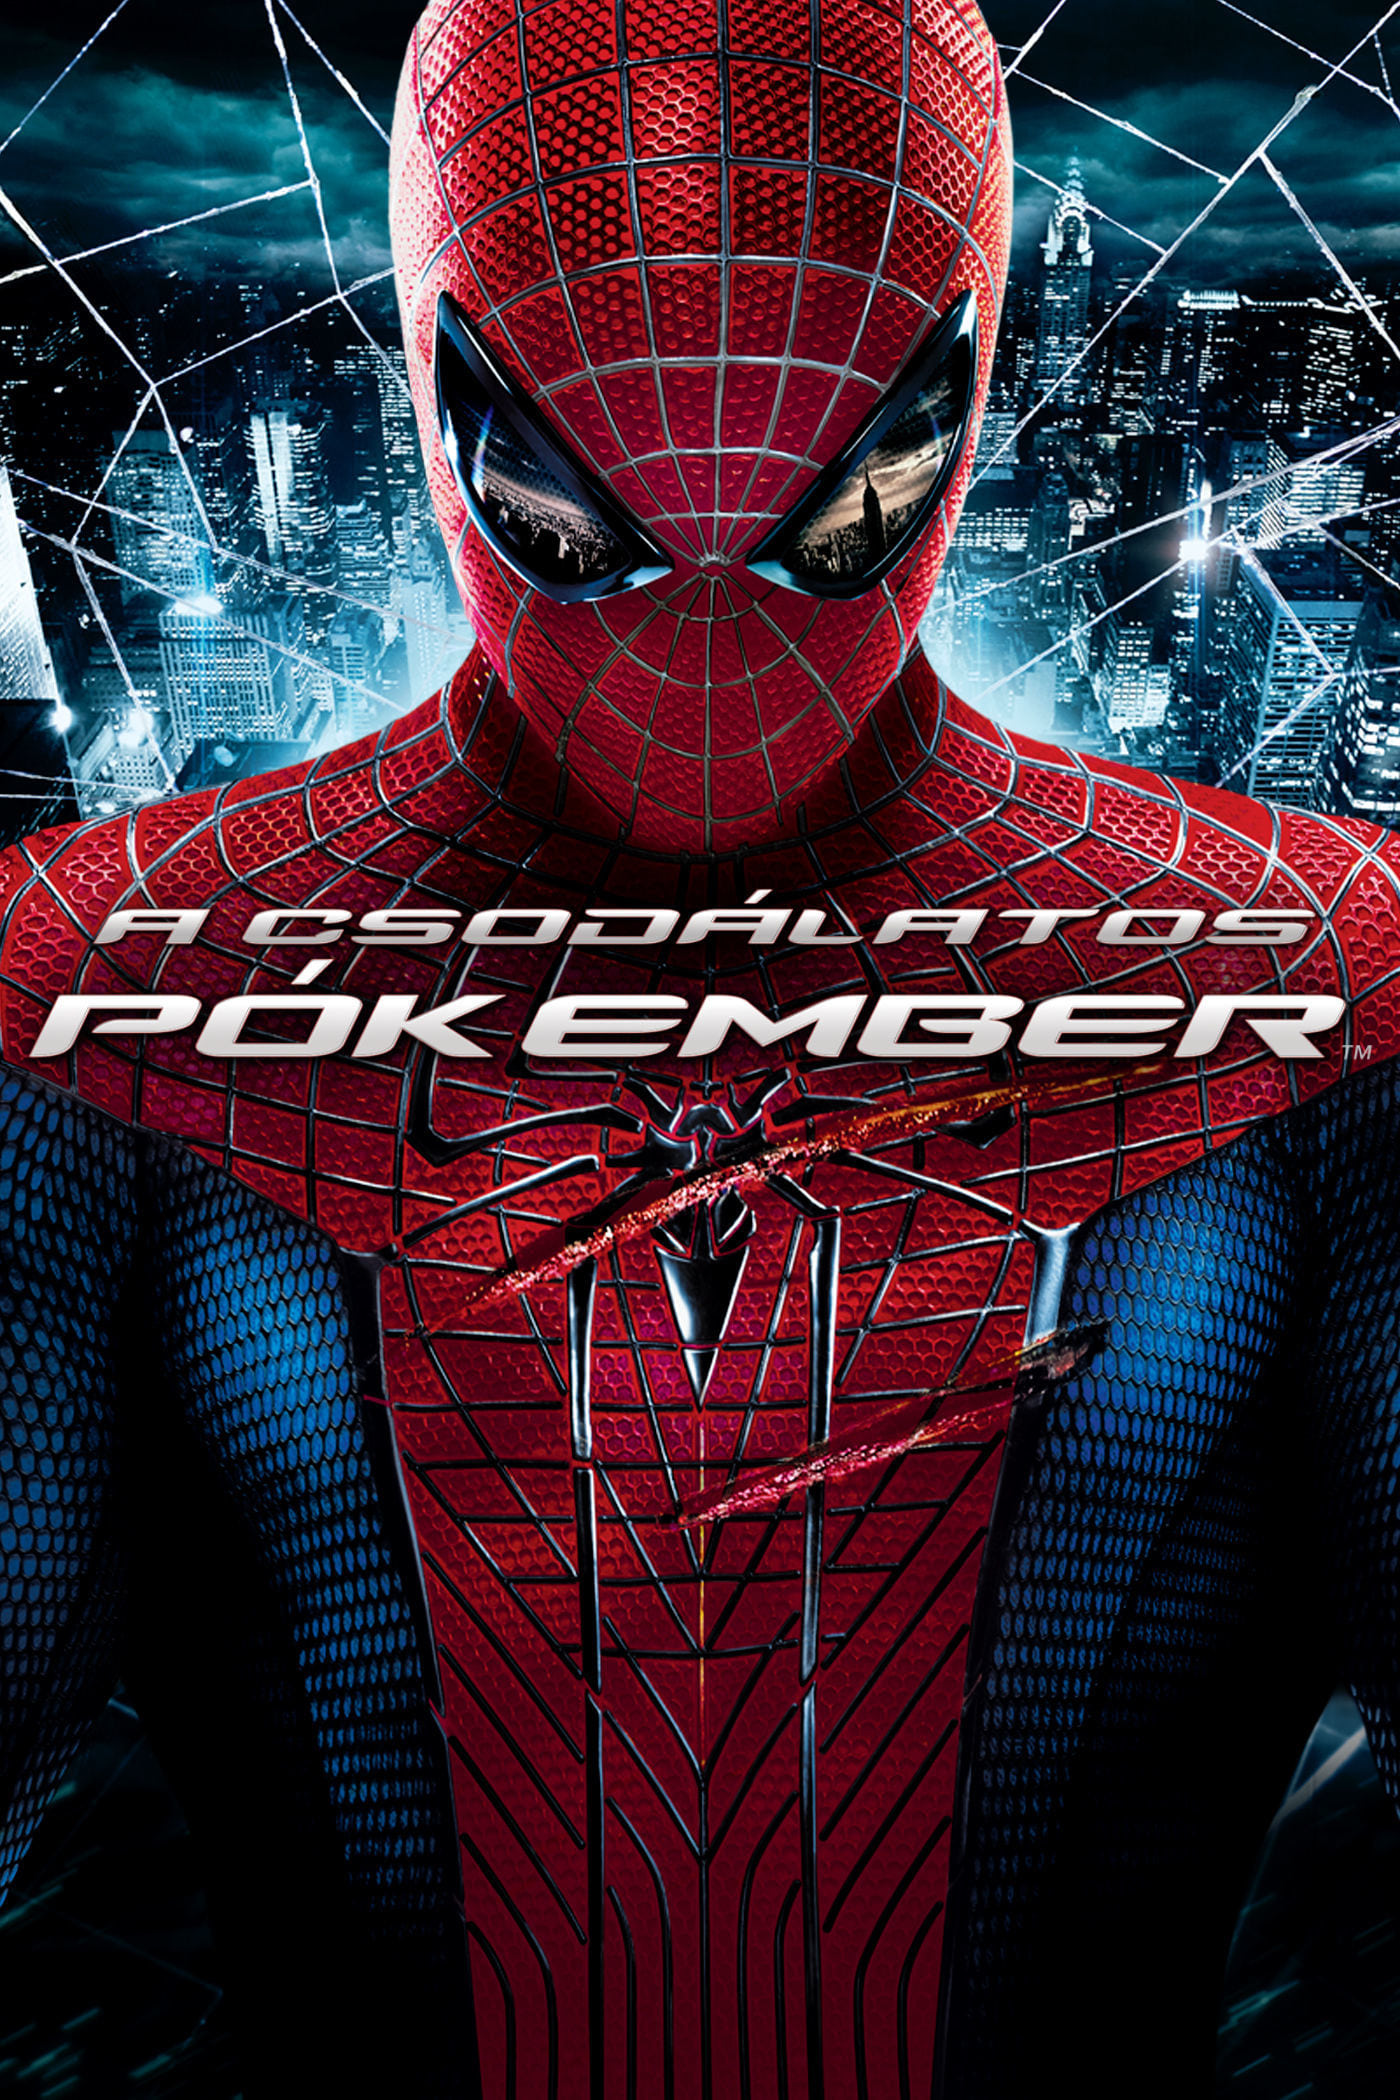 Theatrical Trailer from The Amazing Spider-Man 2 (2014)